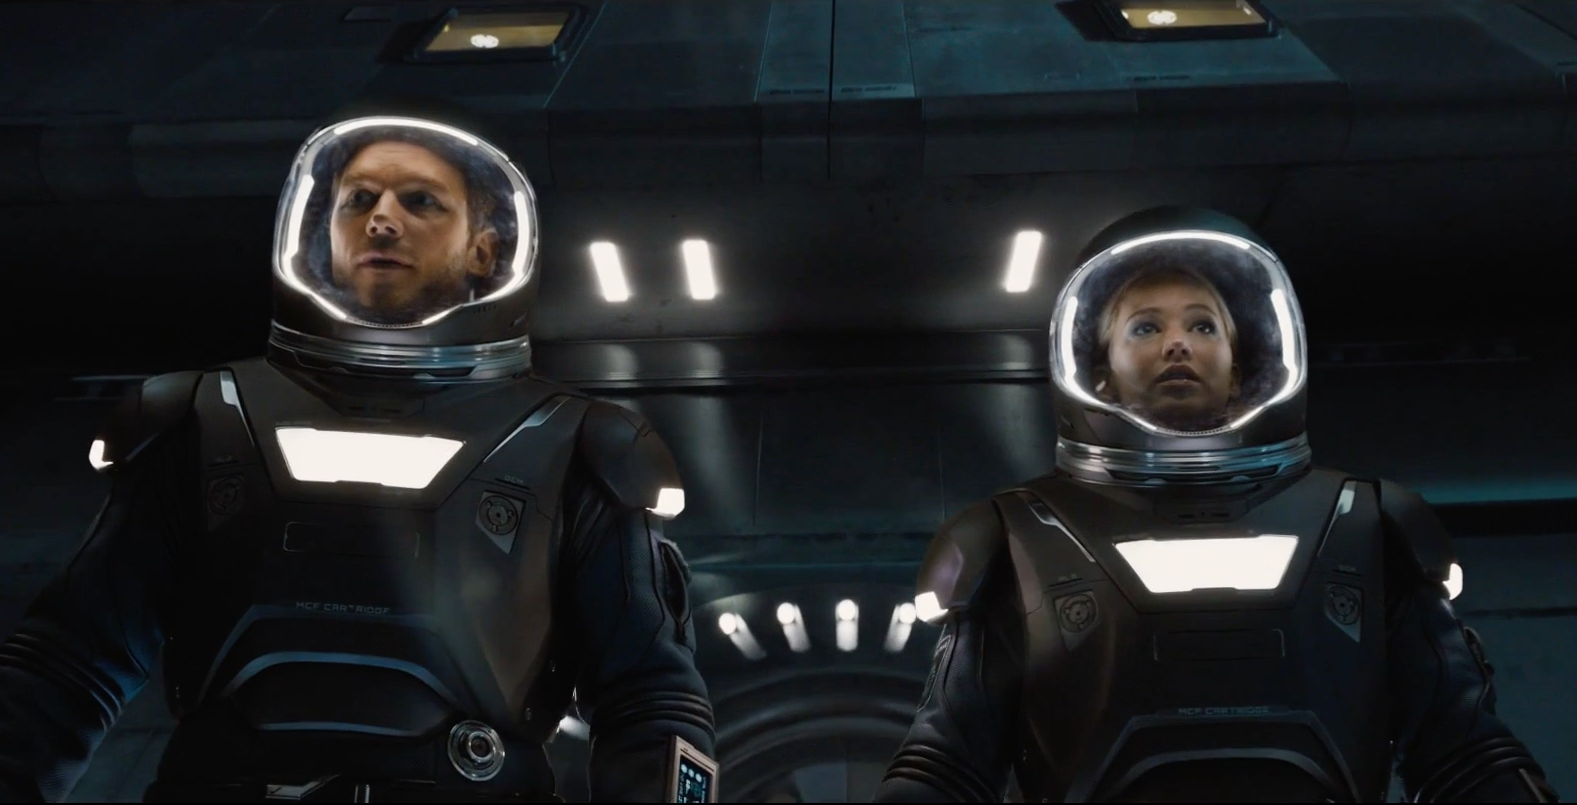 Chris Pratt & Jennifer Lawrence's Movie, Passengers, Finally has a Trailer